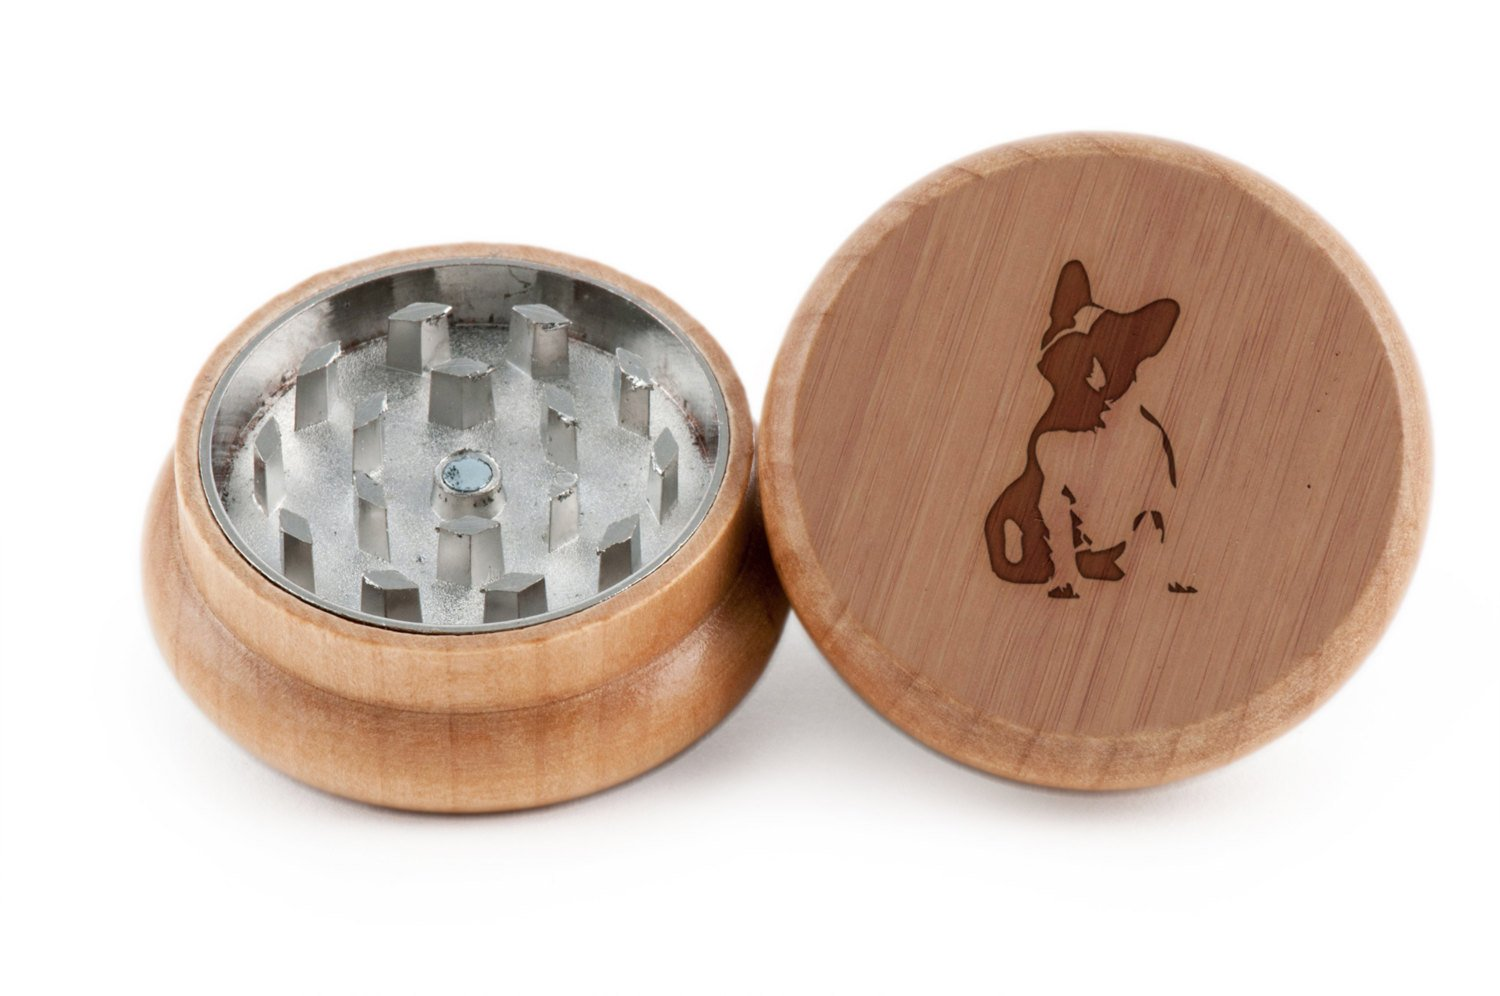 GRINDCANDY Spice And Herb Grinder - Laser Etched French Bulldog Design - Manual Oak Pepper Grinder